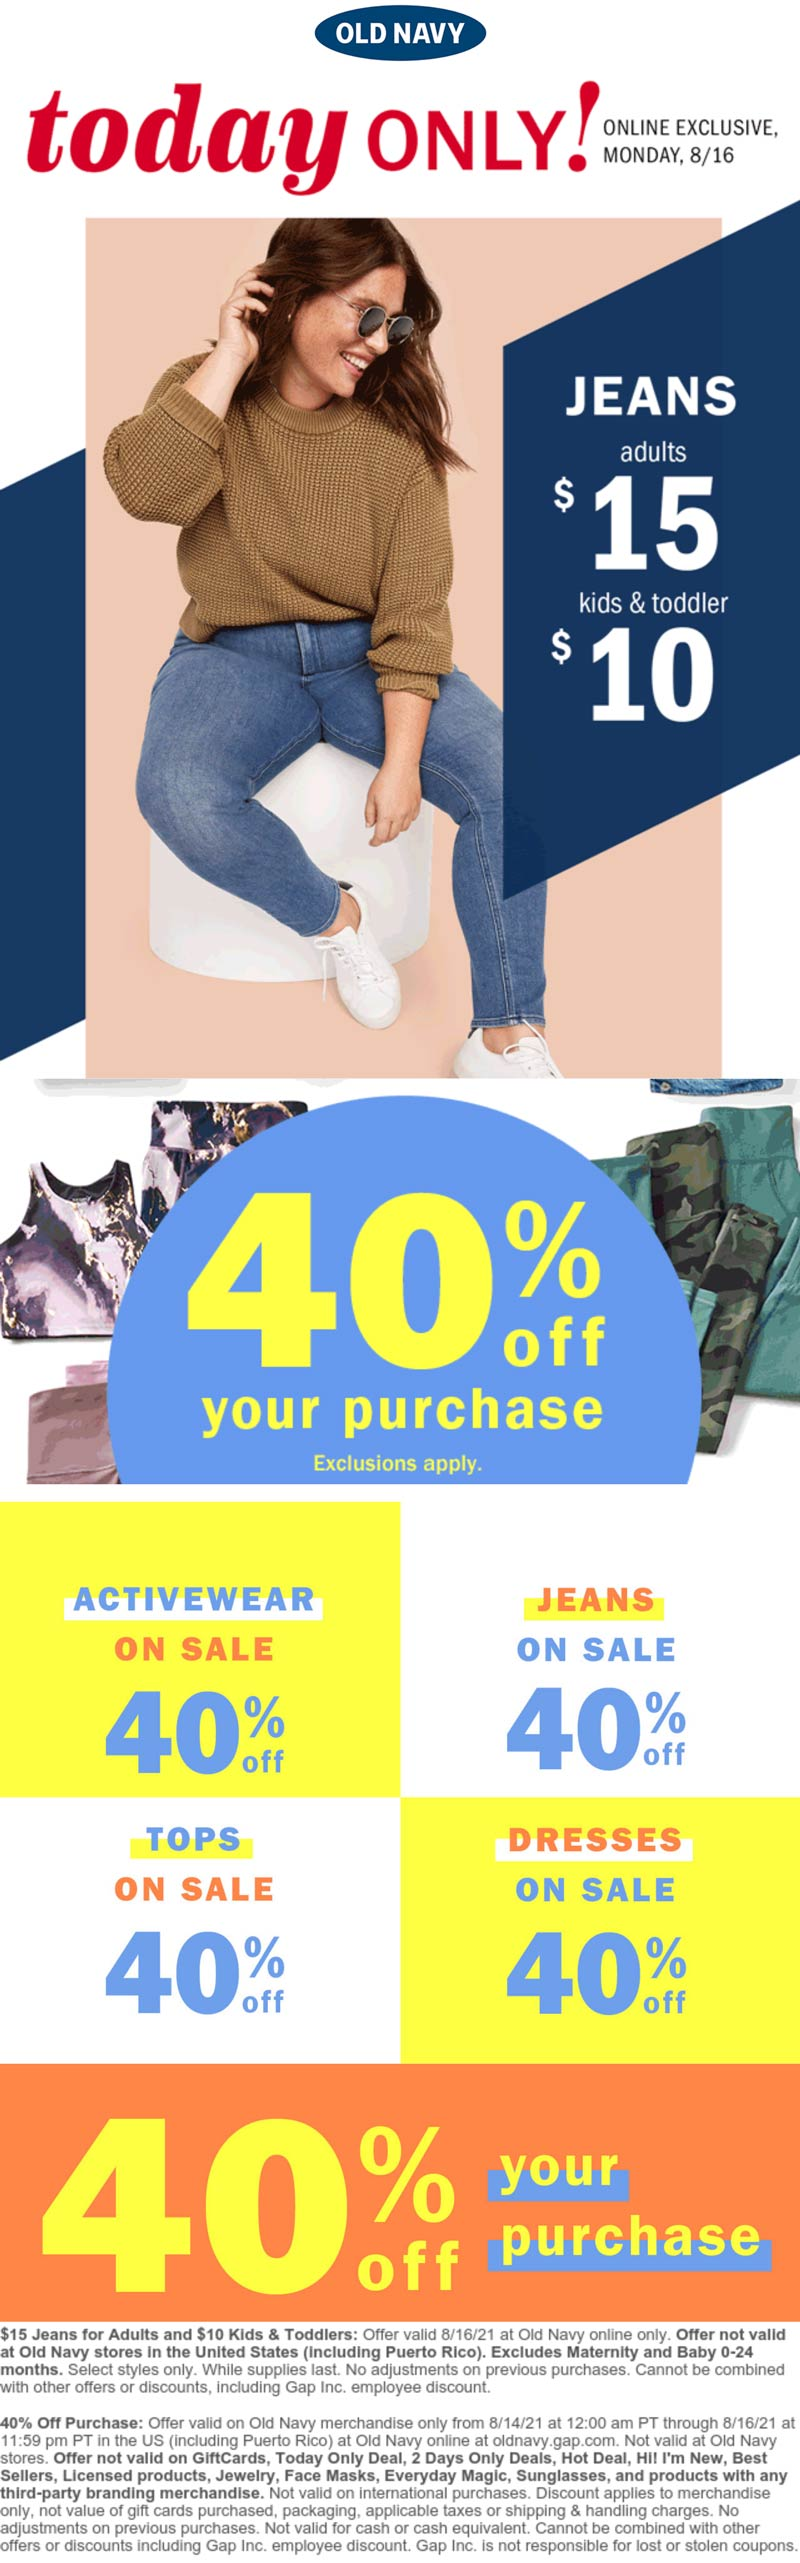 Old Navy stores Coupon  $15 jeans & 40% off online today at Old Navy #oldnavy